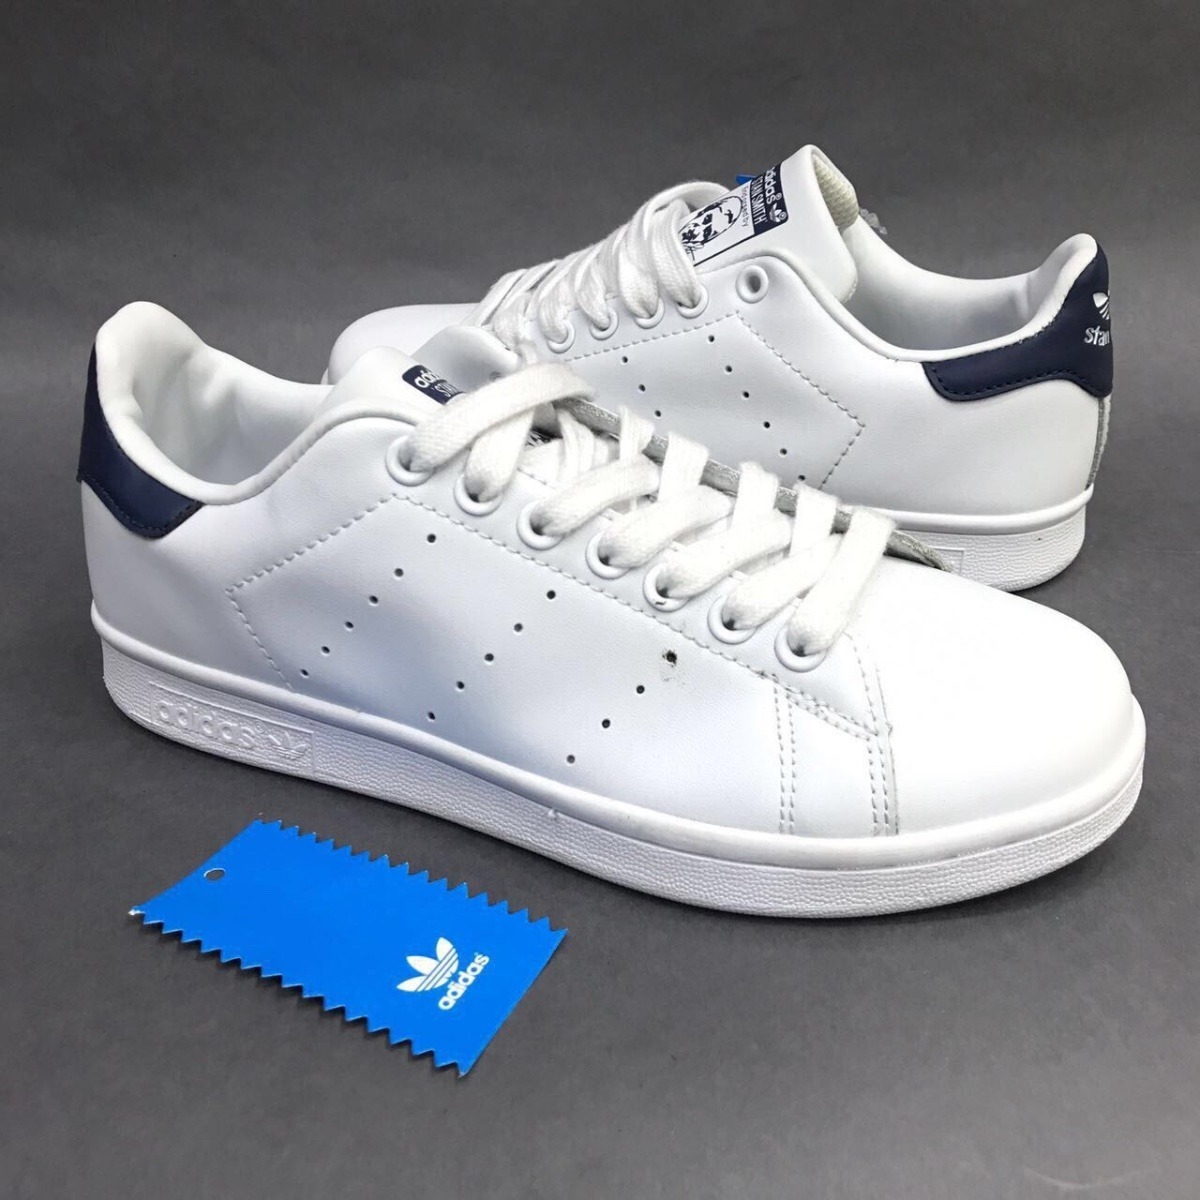 adidas zapatillas stan smith azul marino